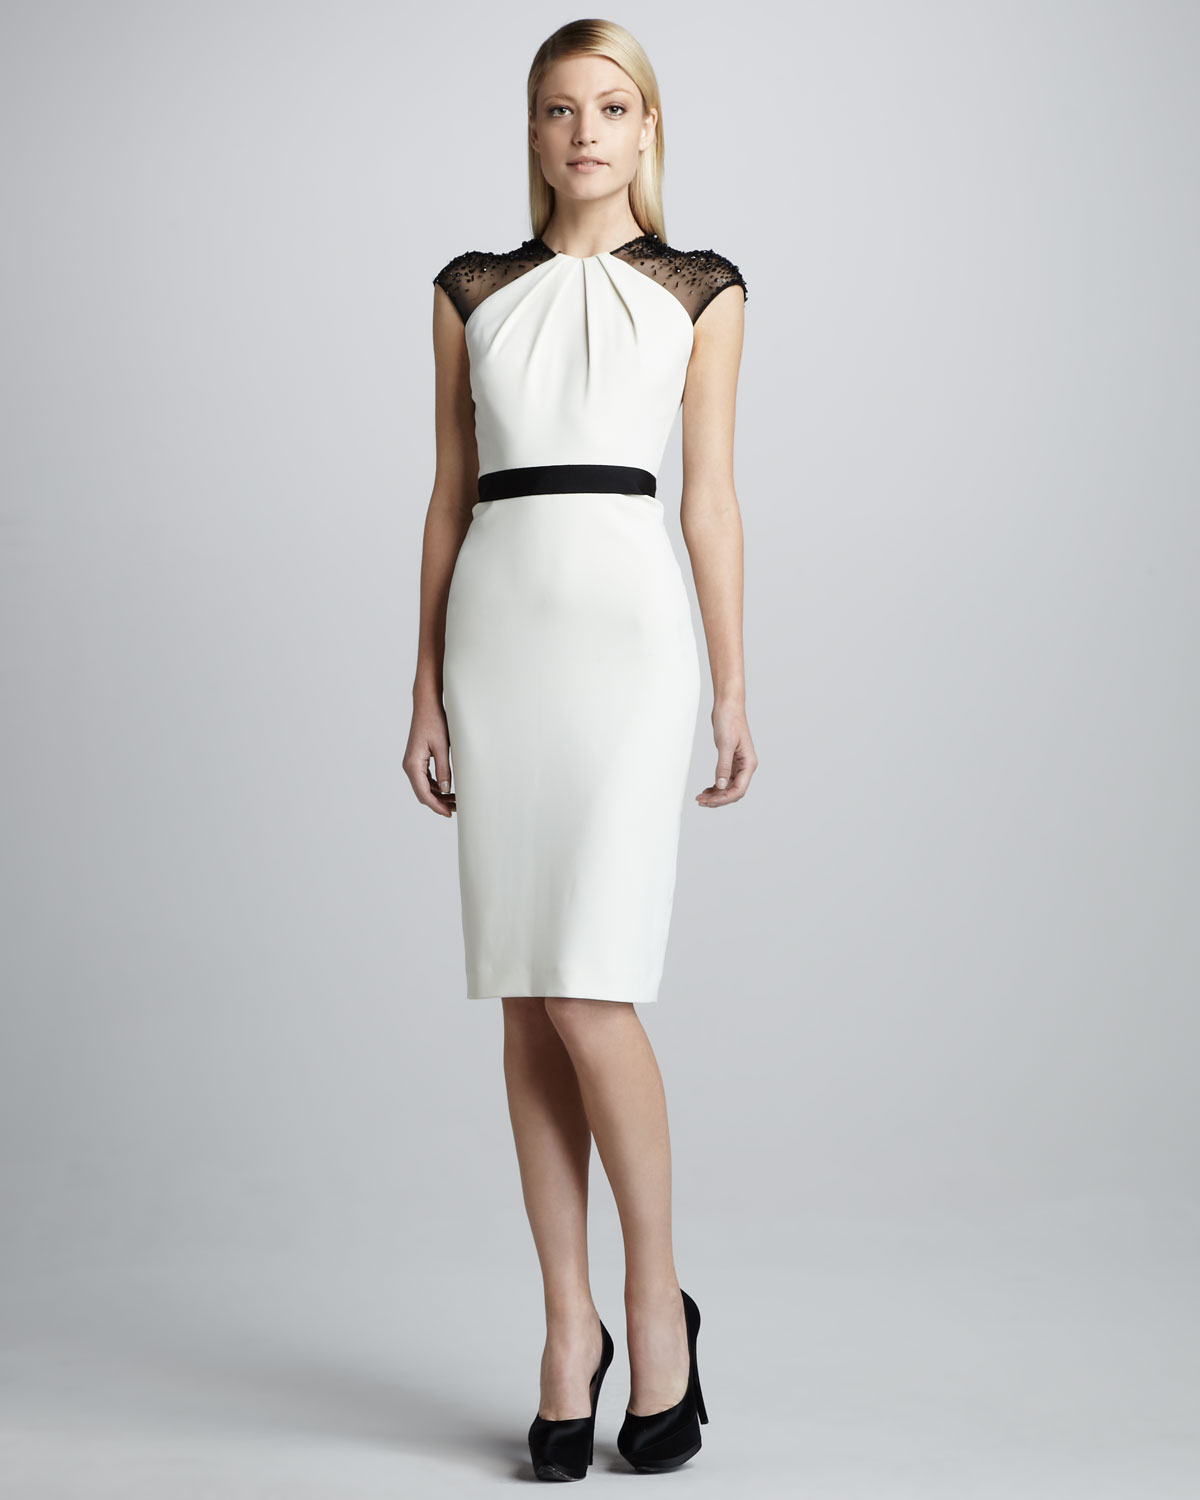 95afdfcd9a2 Badgley Mischka Beadsleeve Belted Cocktail Dress in White - Lyst